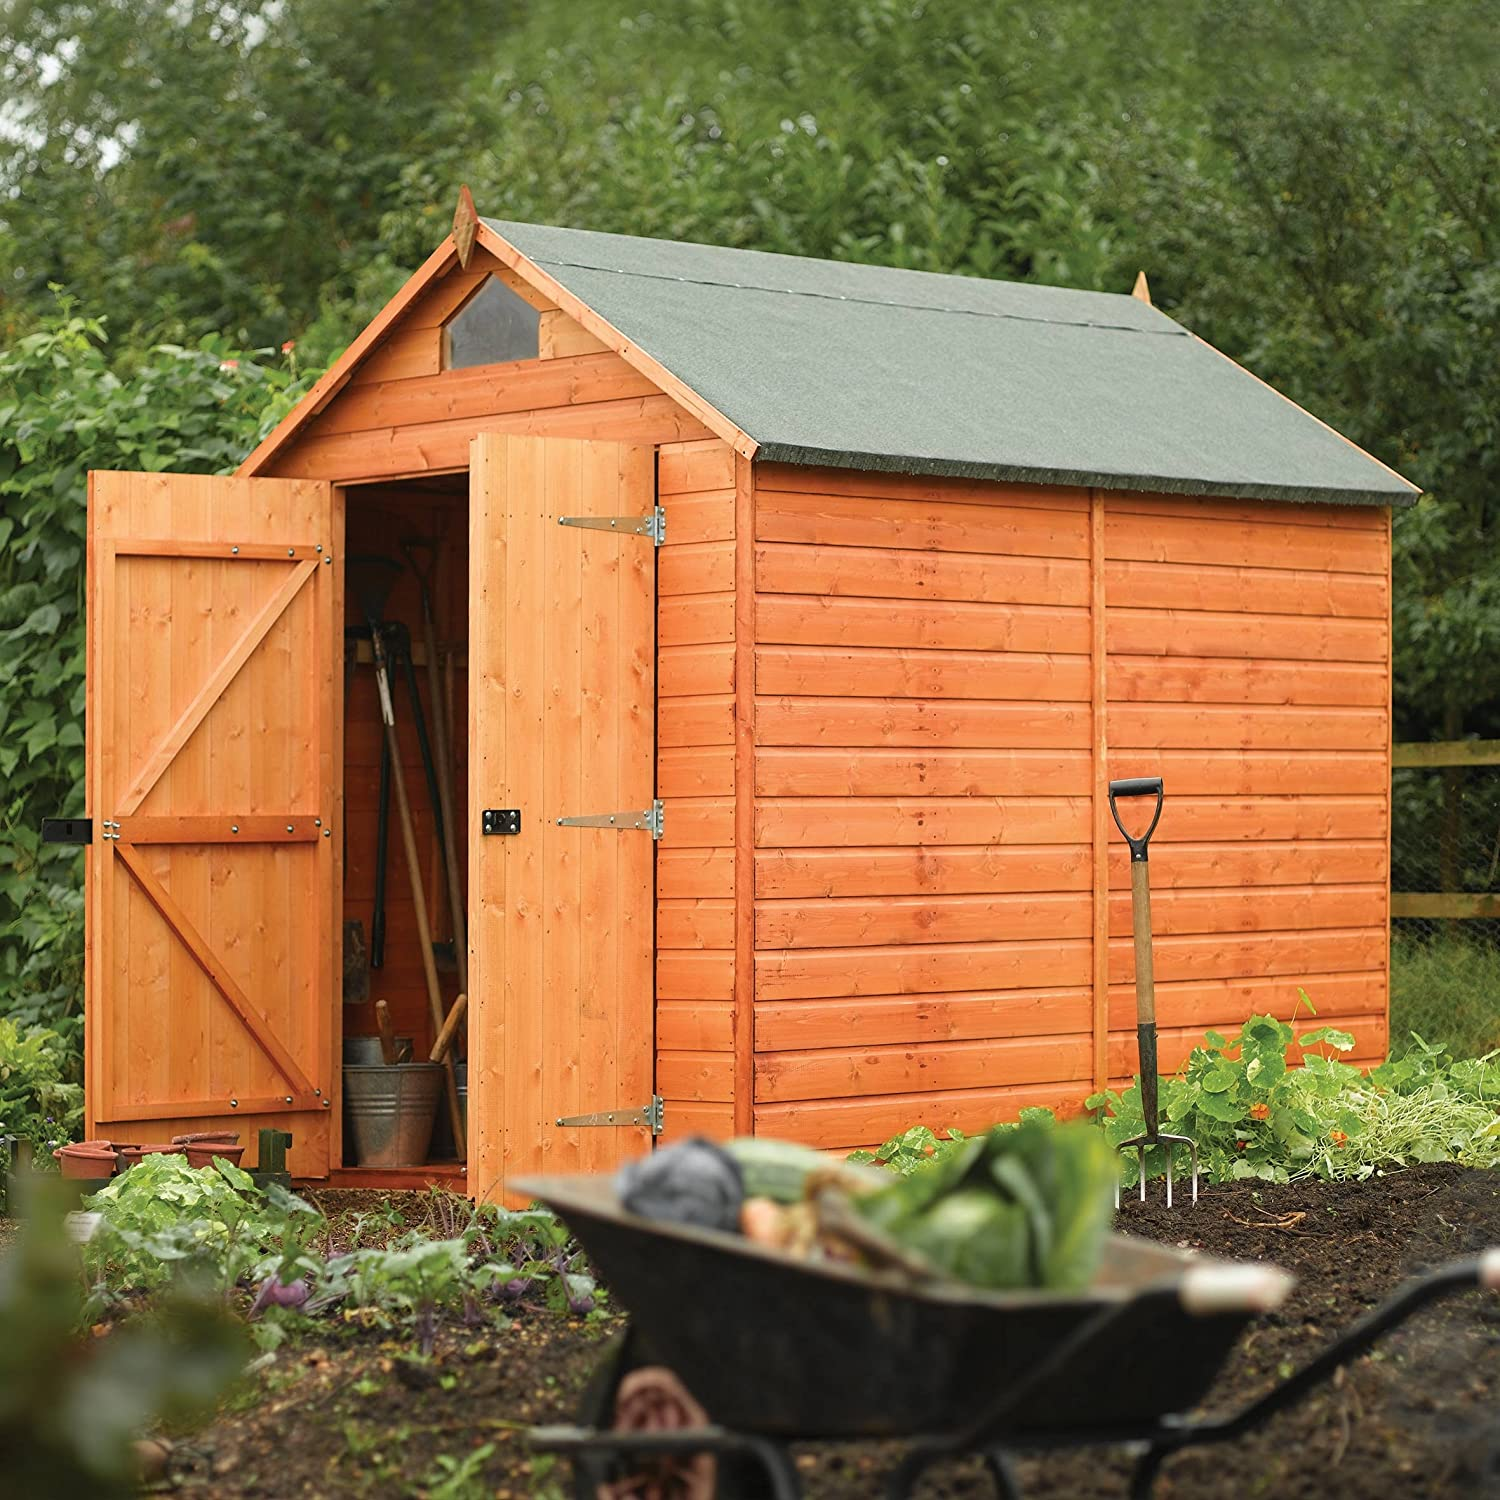 amazoncom rowlinson a053 secure storage shed 8 by 6 patio lawn garden